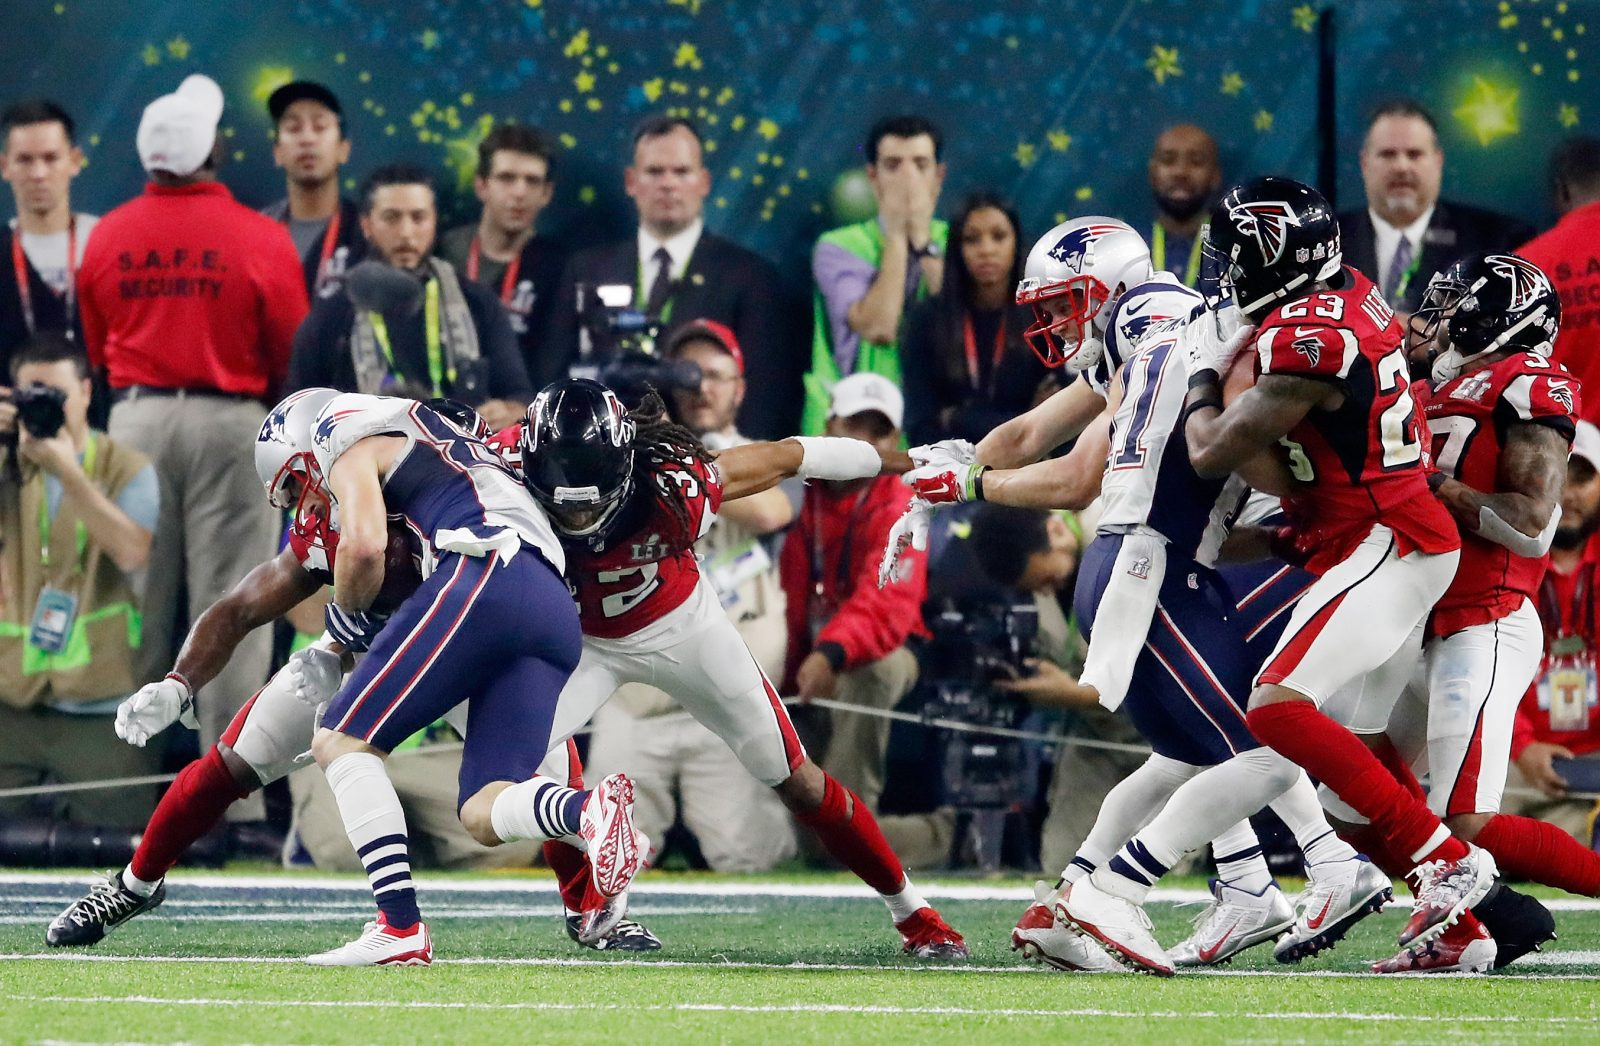 Patriots receiver Danny Amendola converts the tying two-point conversion. (Getty Images)